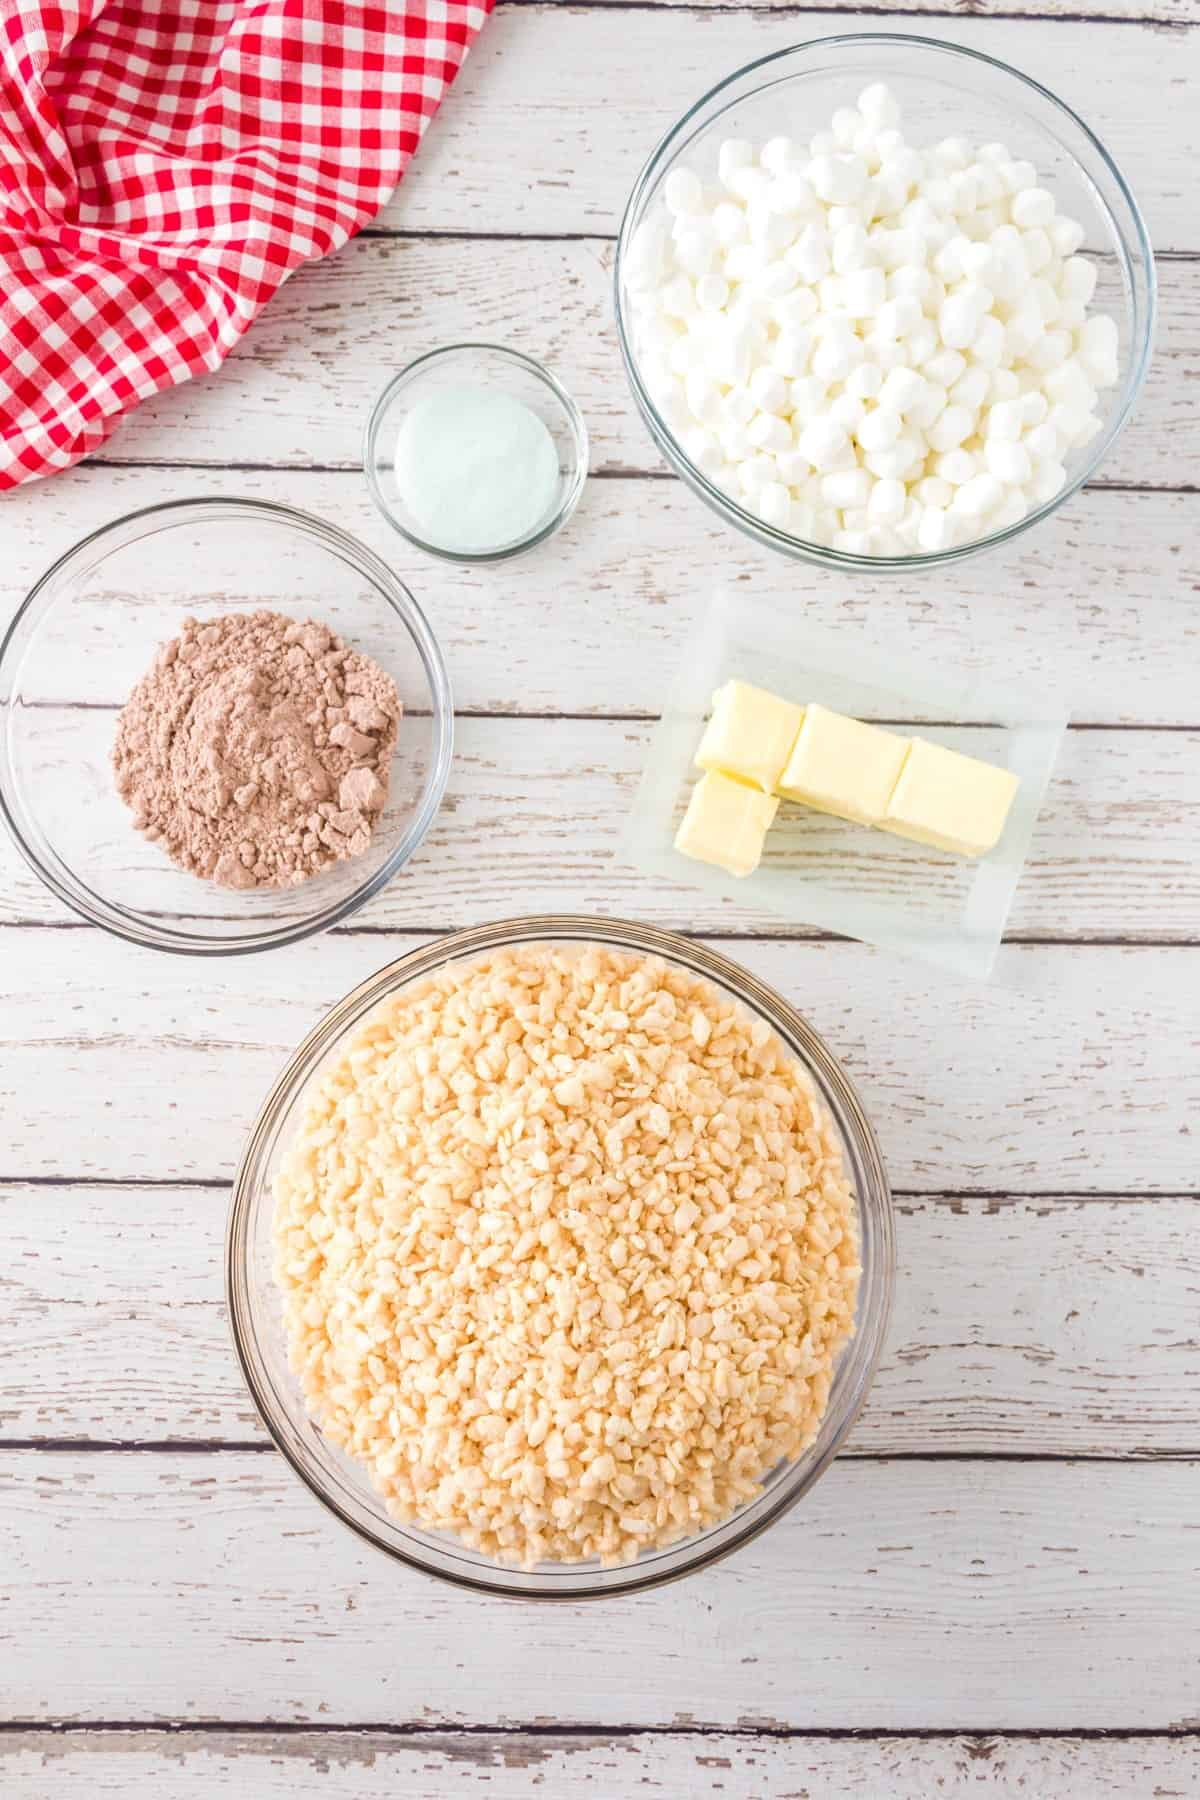 Ingredients for Layered Rice Krispies Squares